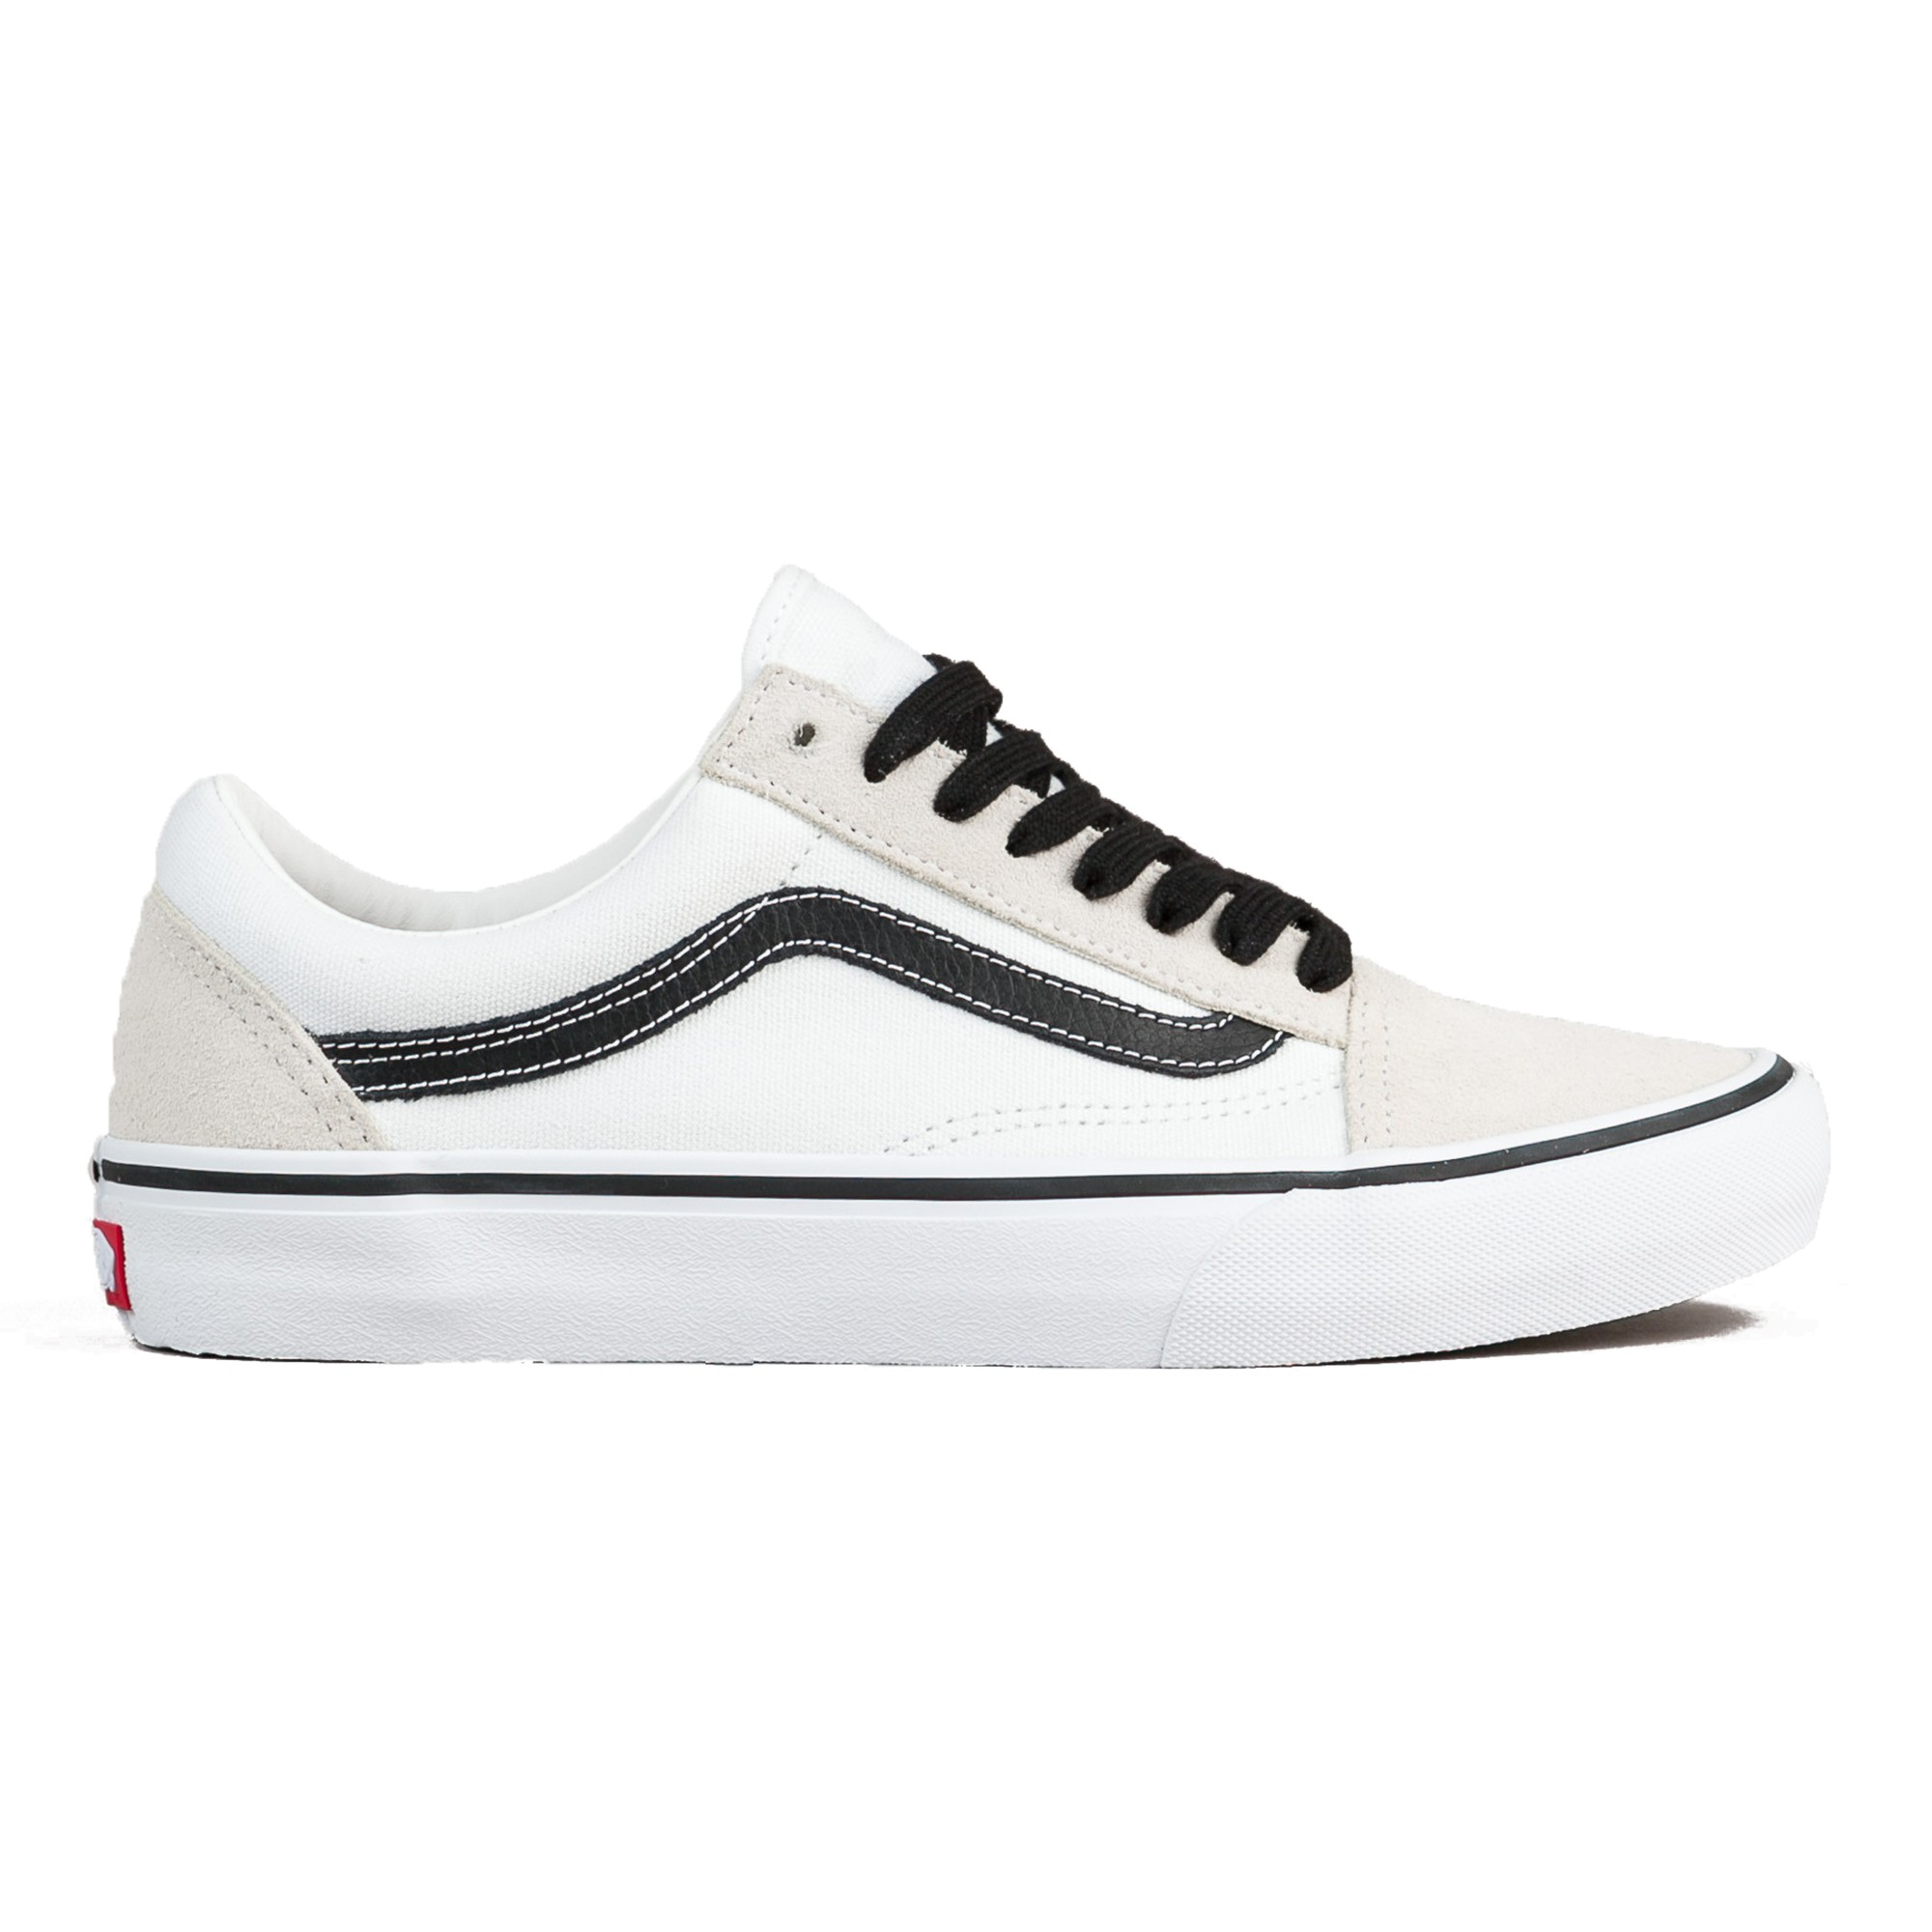 Vans Old Skool Pro 50th Anniversary White  u0026 Black Skate Shoes  e9d531c6d